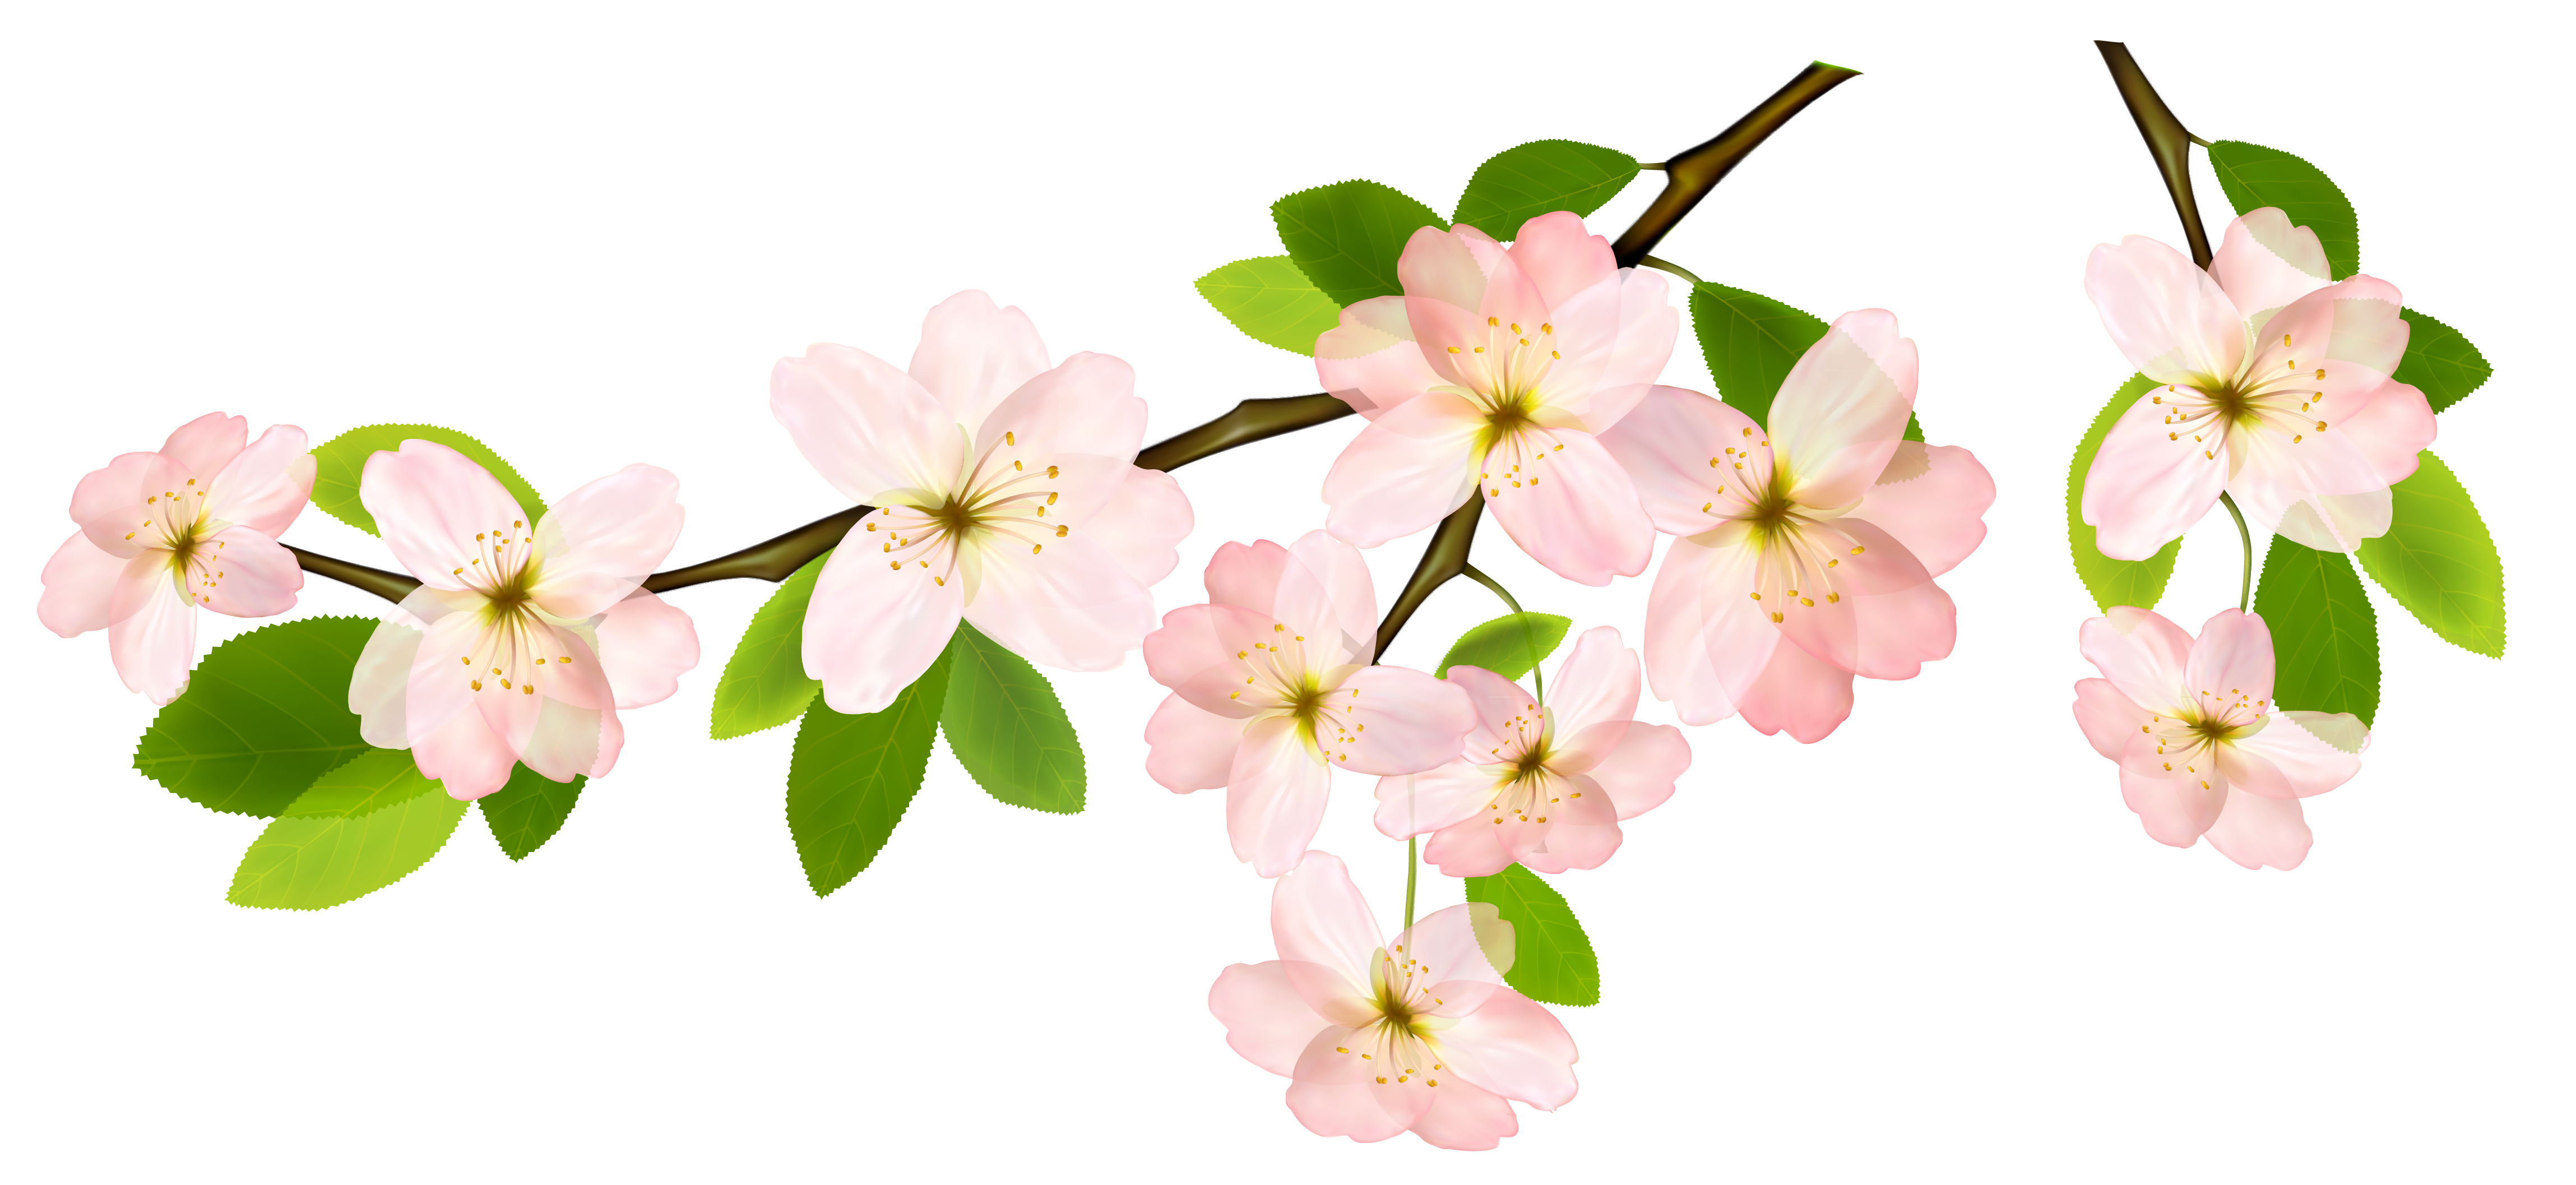 Spring background png. Branch clipart picture gallery